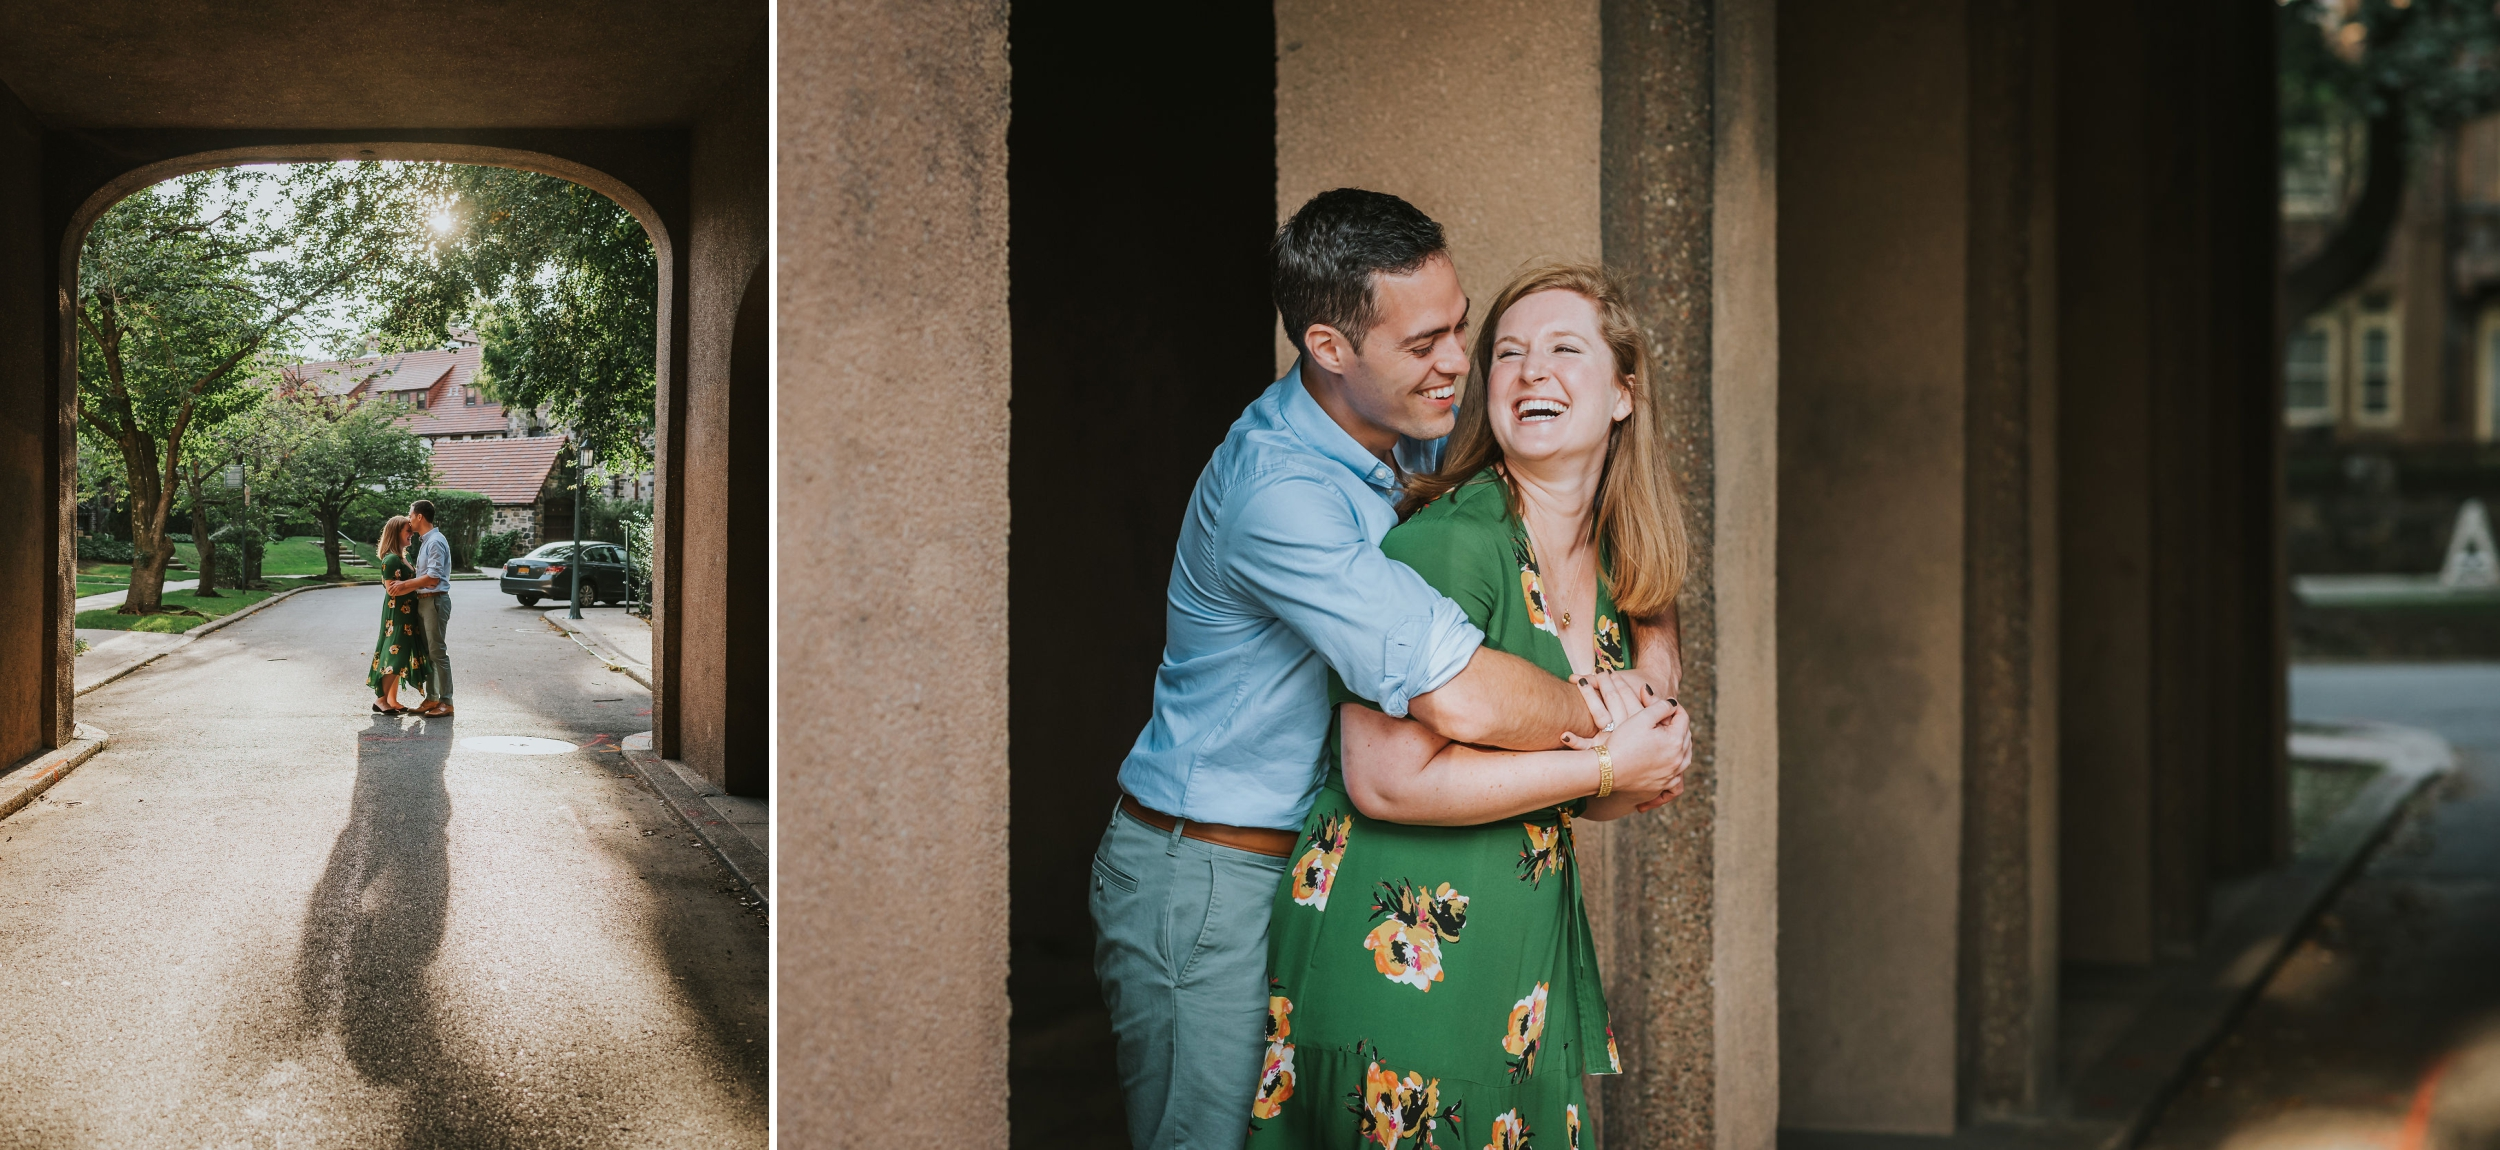 Abigail and Andrew Forest Hills Gardens Engagement NYC 08.jpg